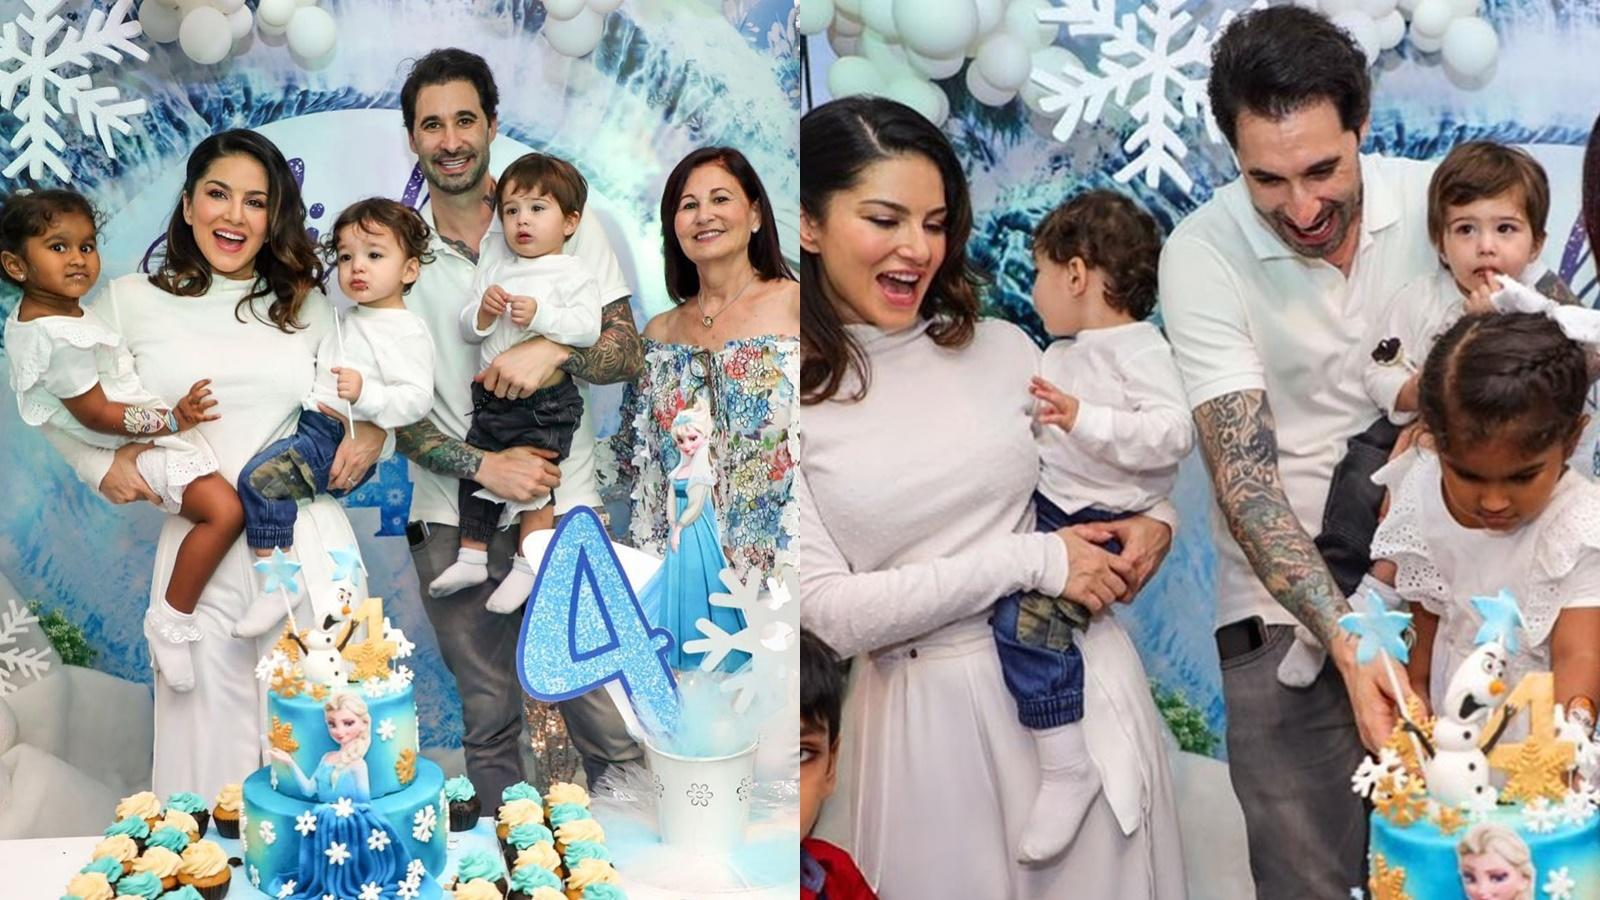 Sunny Leone and husband Daniel Weber surprise daughter Nisha Kaur Weber with 'frozen' themed birthday party